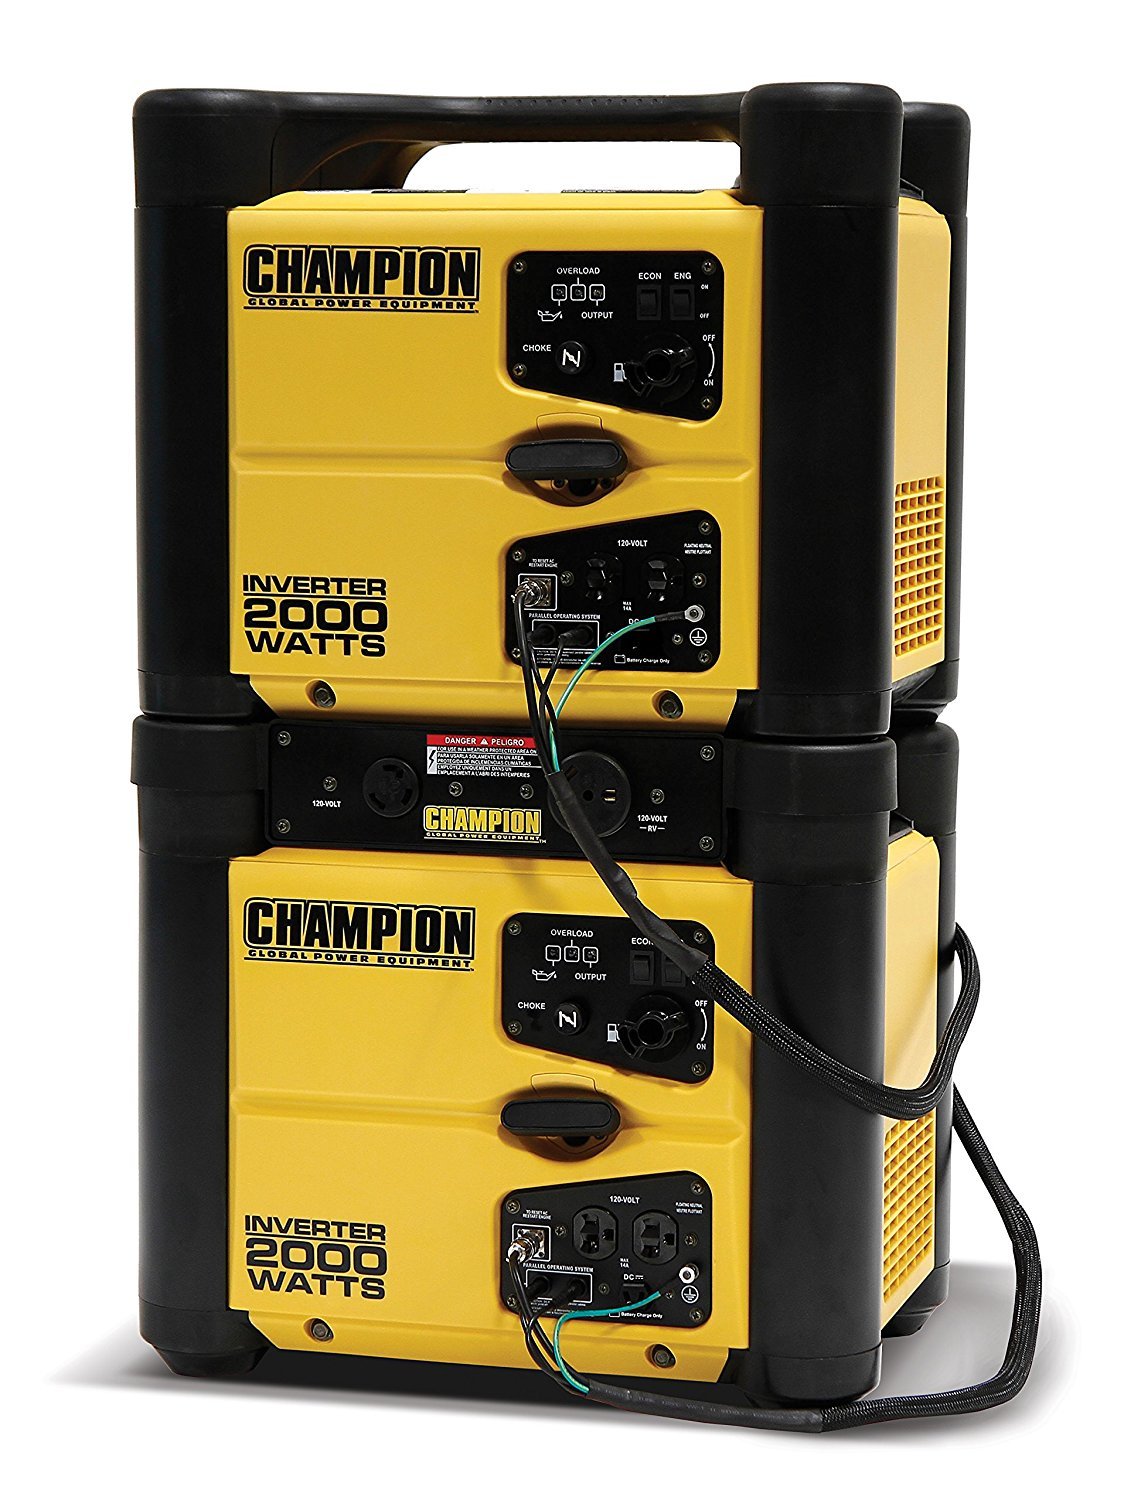 champion generators champion generator reviews